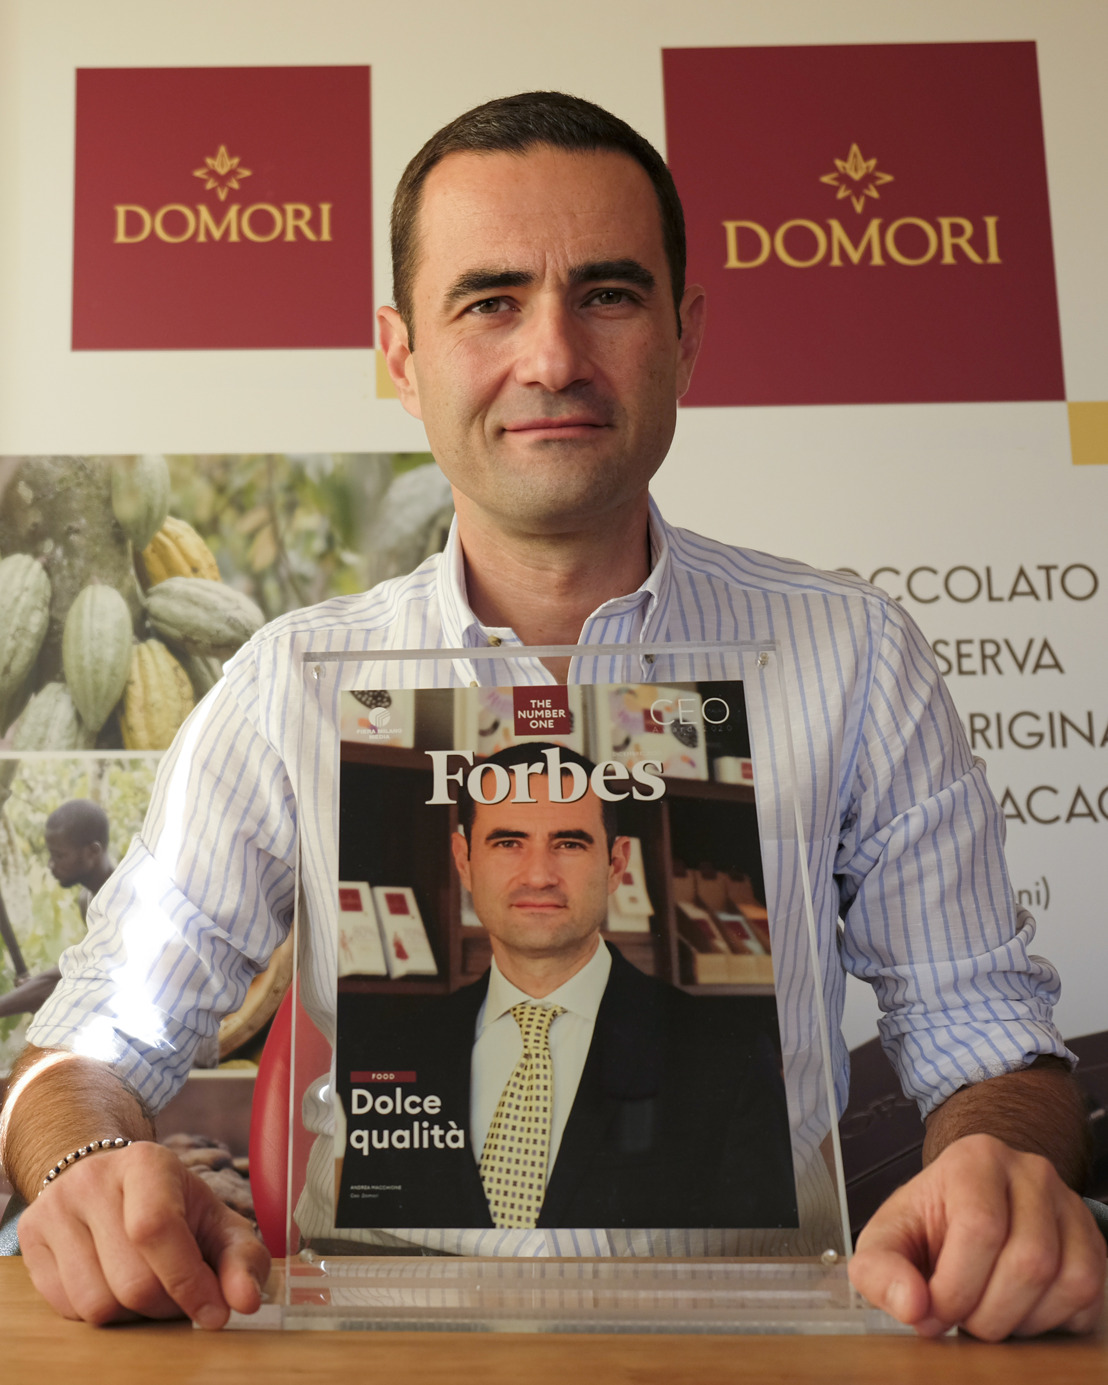 CEO ITALIAN AWARDS 2020: ANDREA MACCHIONE PREMIATO PER LA CATEGORIA FOOD